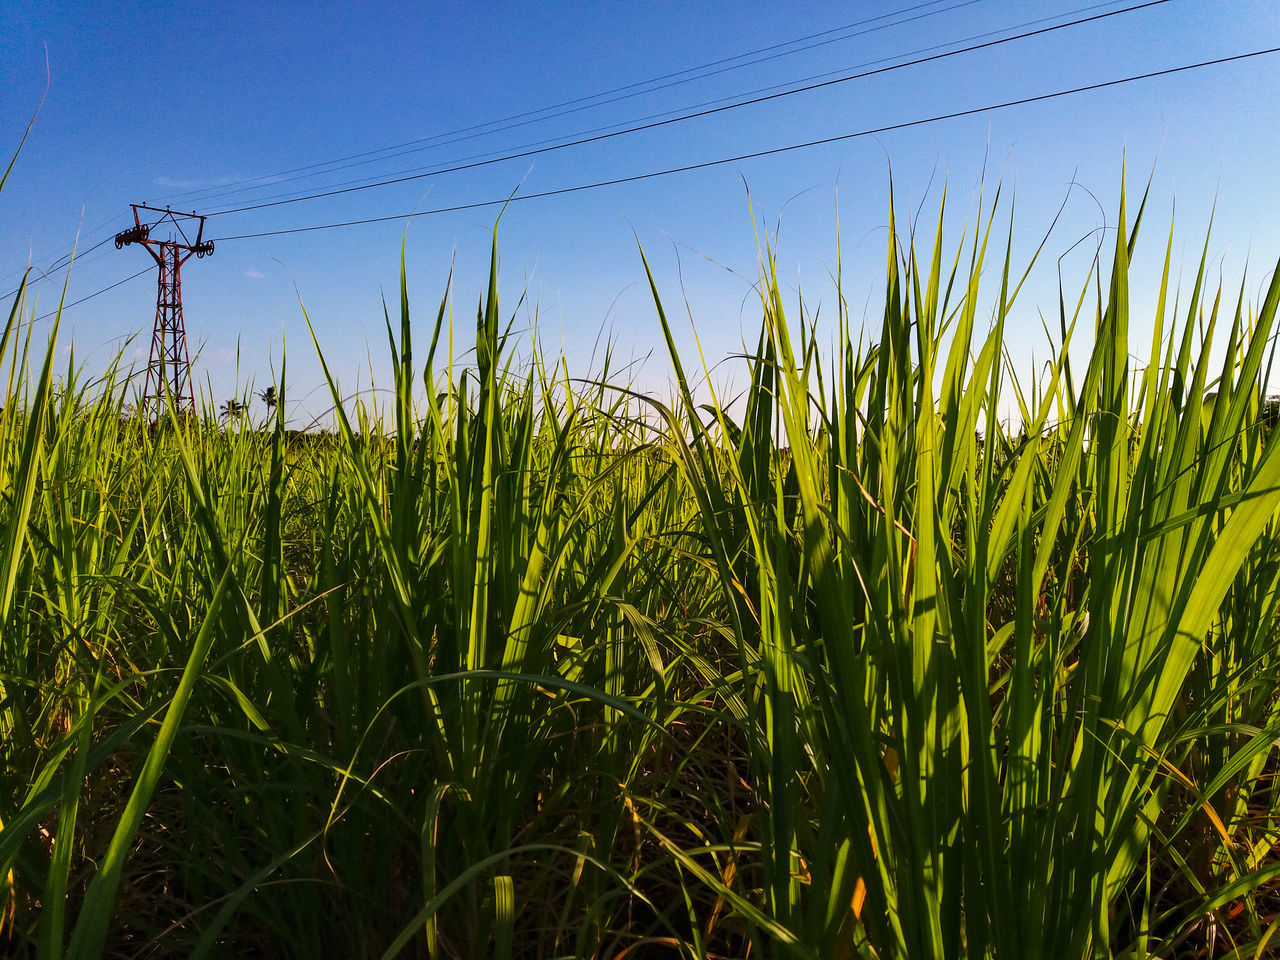 field, grass, growth, cable, nature, no people, agriculture, day, tranquility, outdoors, rural scene, beauty in nature, clear sky, technology, electricity pylon, sky, close-up